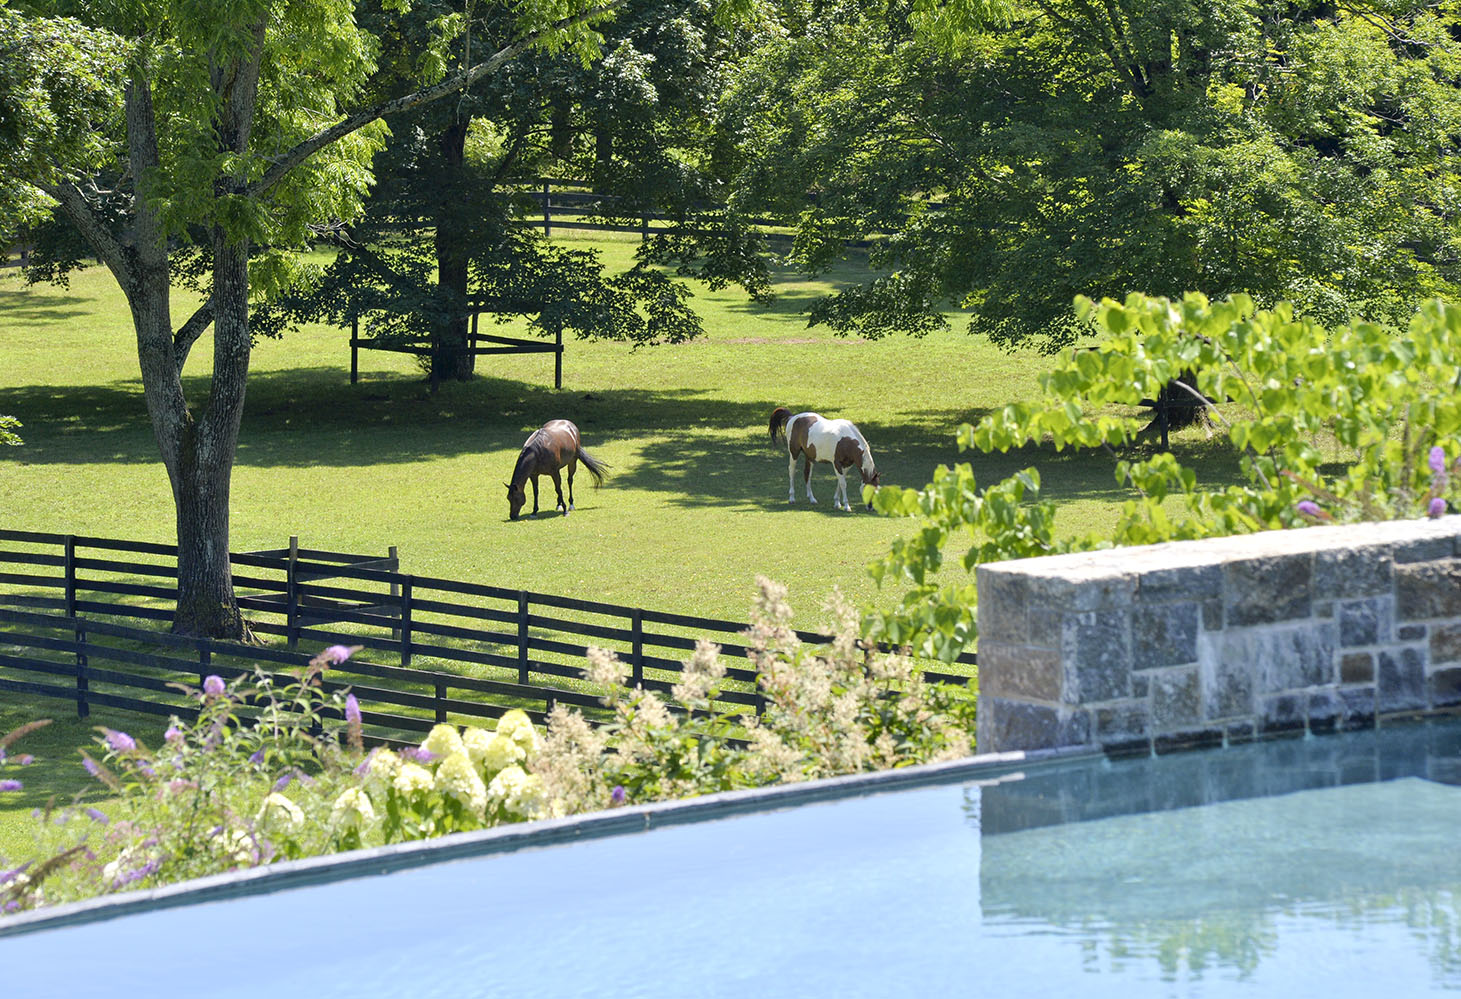 River Oak Farm has an array of facilities for sports lovers of all stripes: a 20-stall barn, riding arena, paddocks and trails, soccer field, basketball court, tennis court—plus an infinity pool and spa in which to relax after the games.